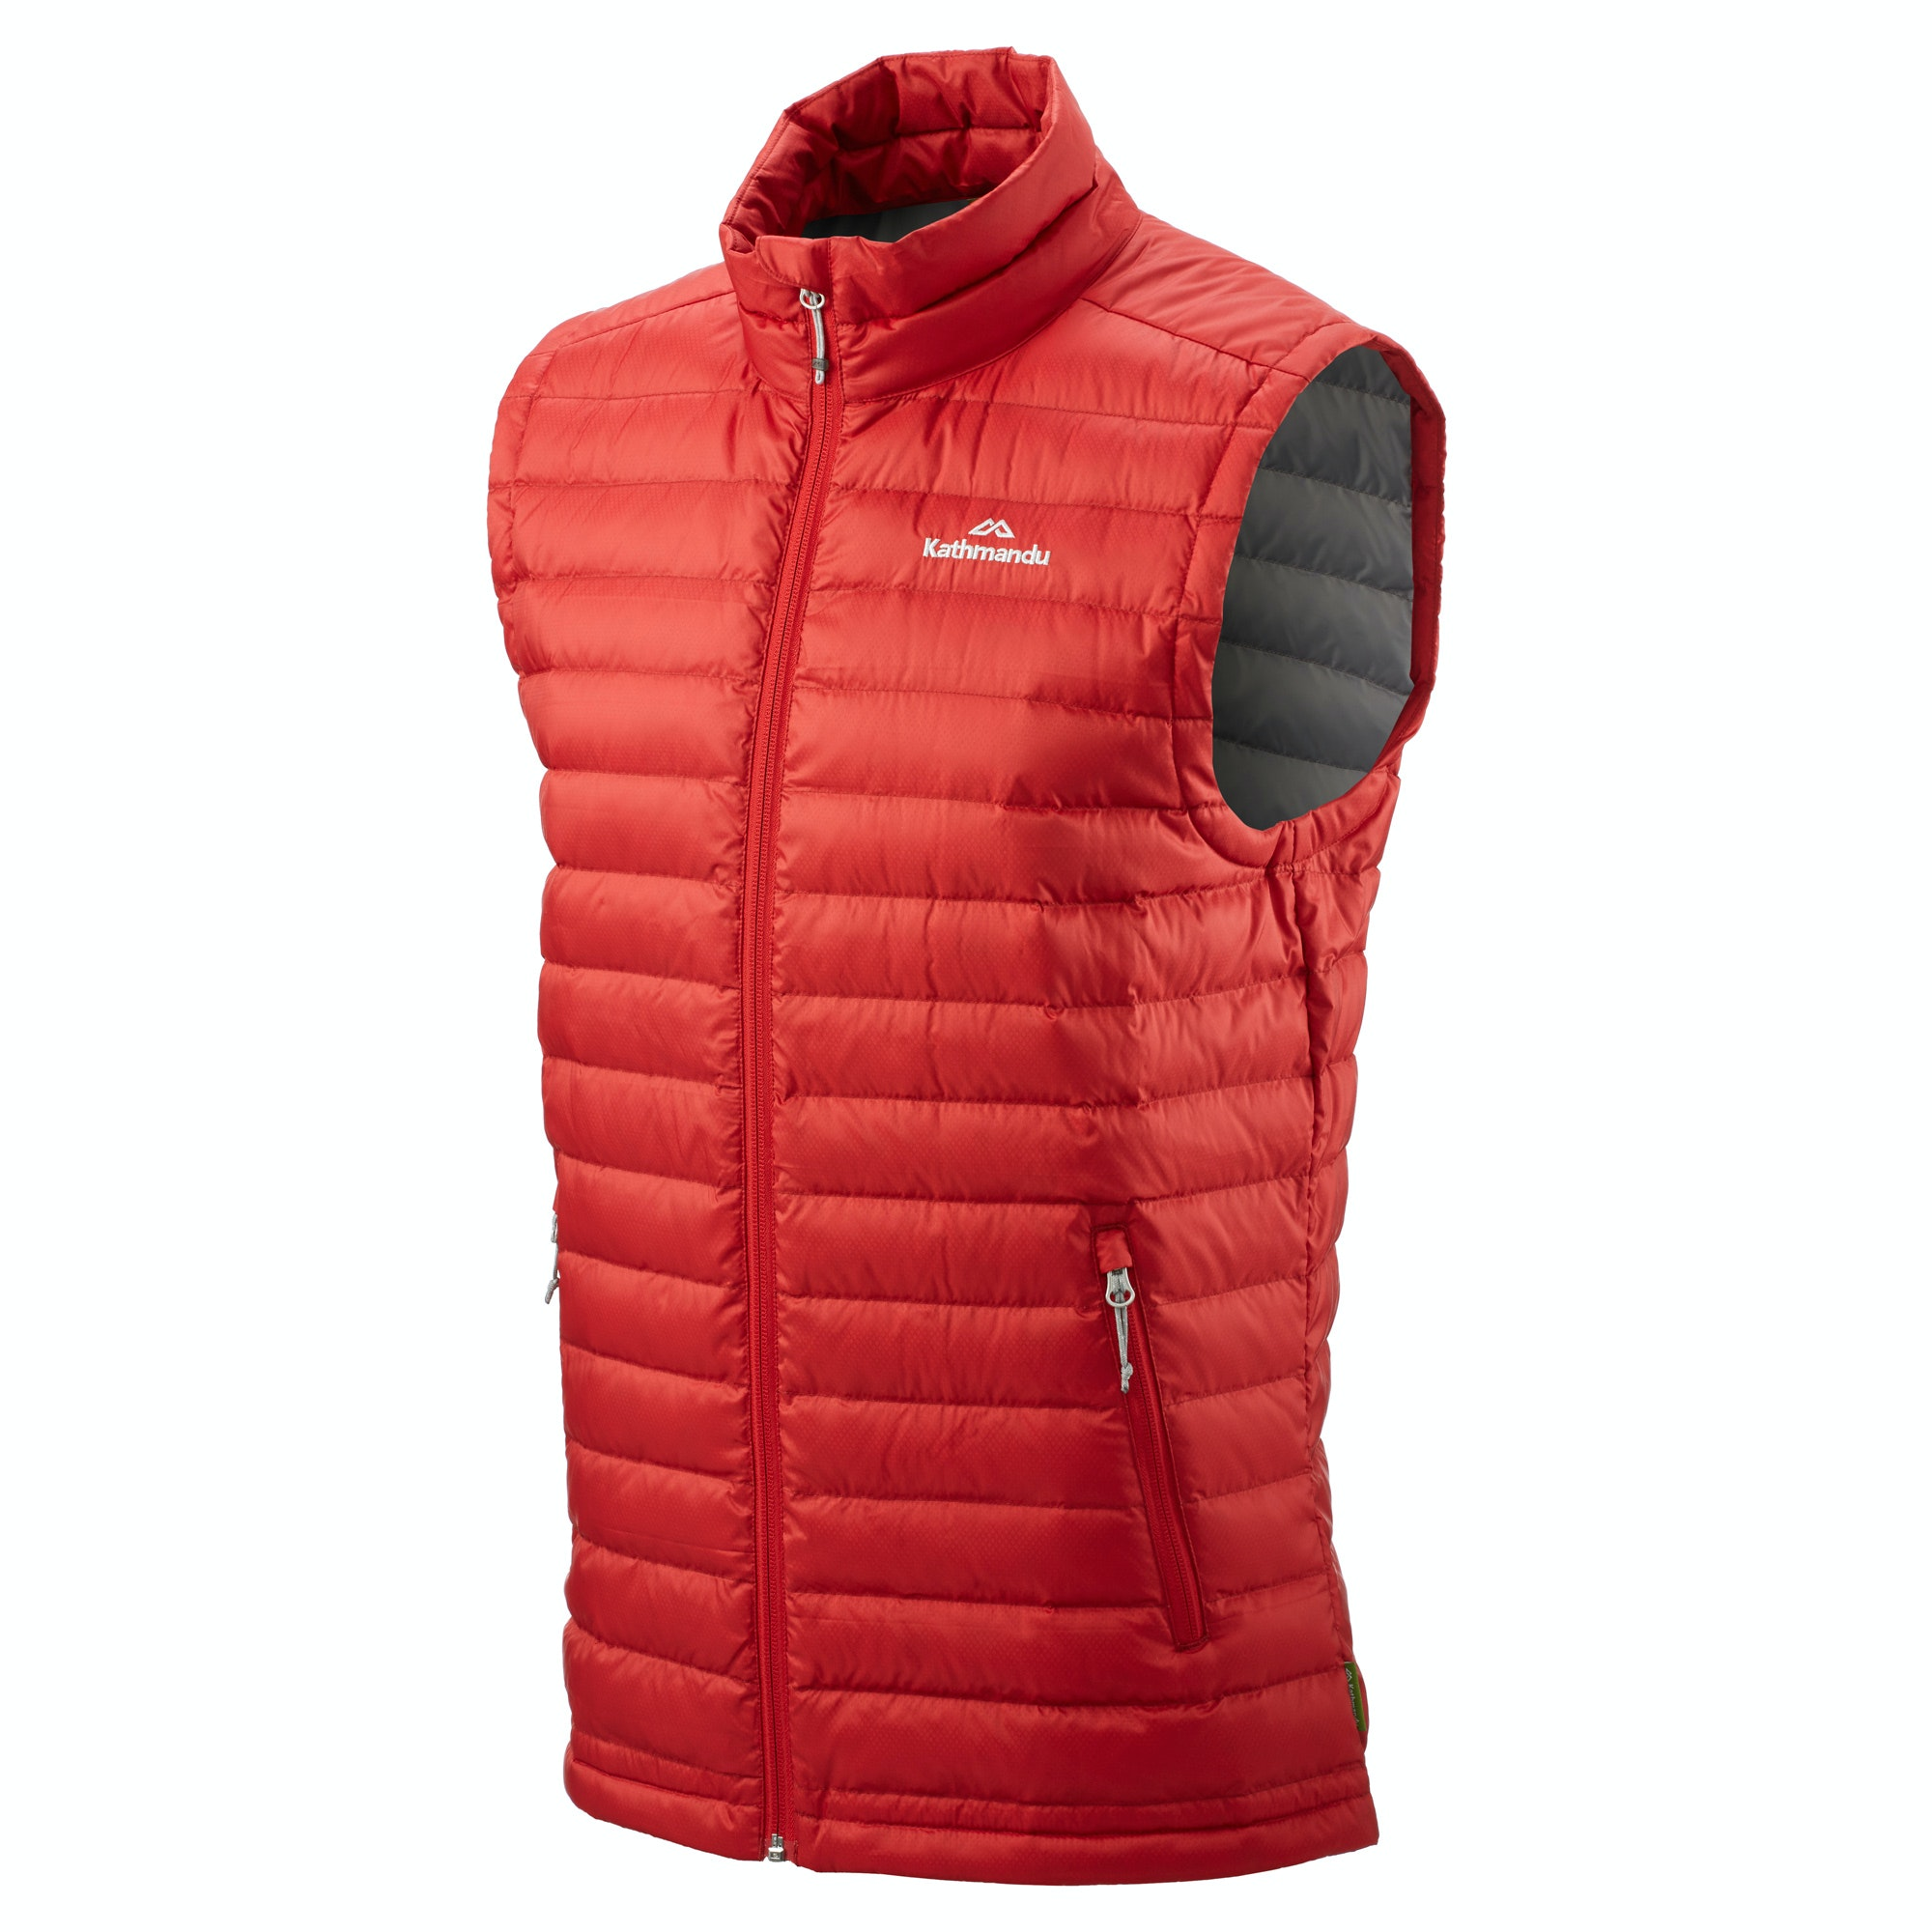 Red puffer vest by Kenneth Cole ketauan.ga and lining are polyester and the filling is 60% down and 40% feathers. Great Gently used condition. KENNETH COLE. shoulder to hem ~ 22